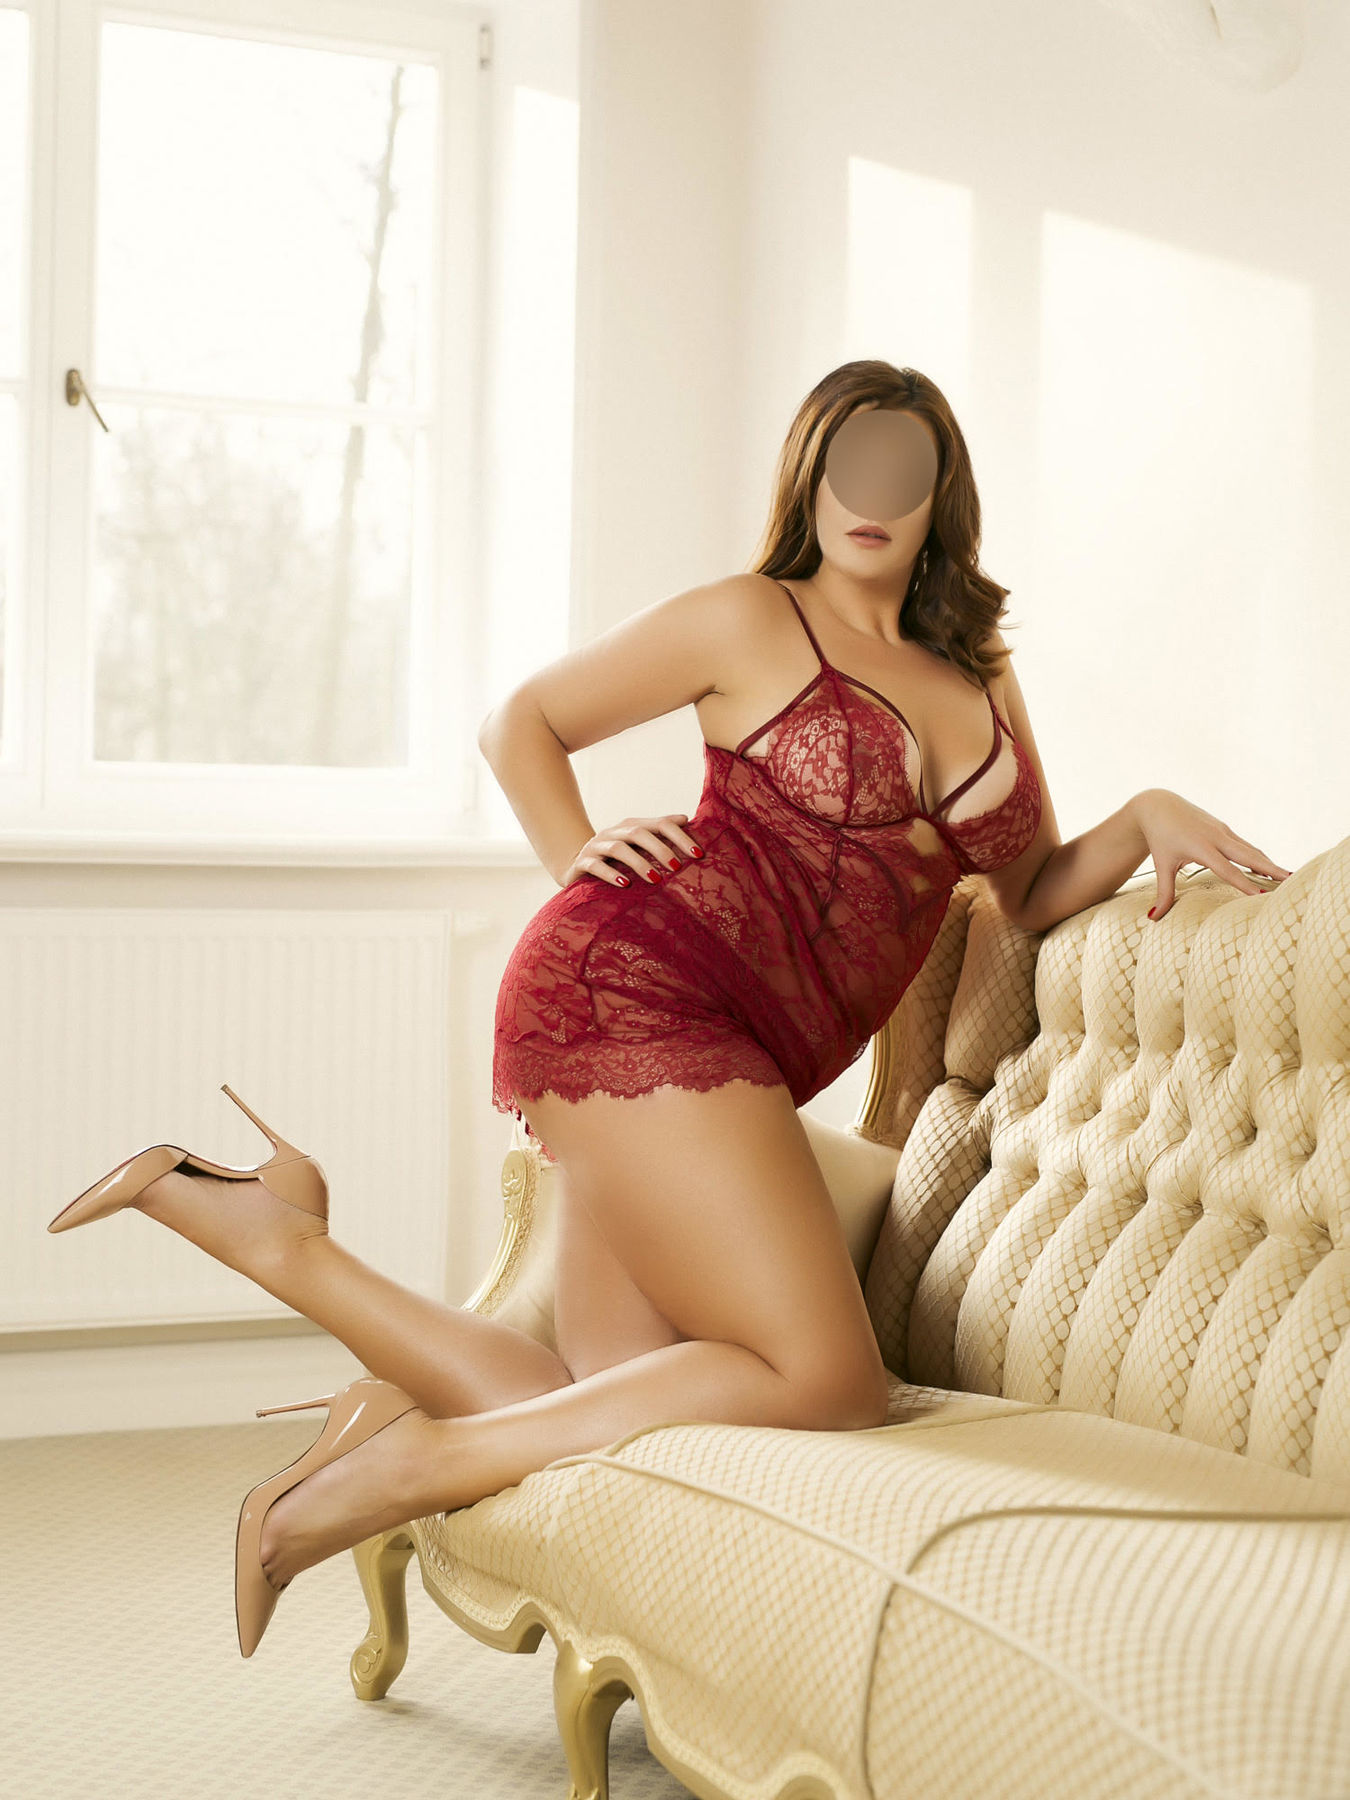 independent escorts poland lingam massage service